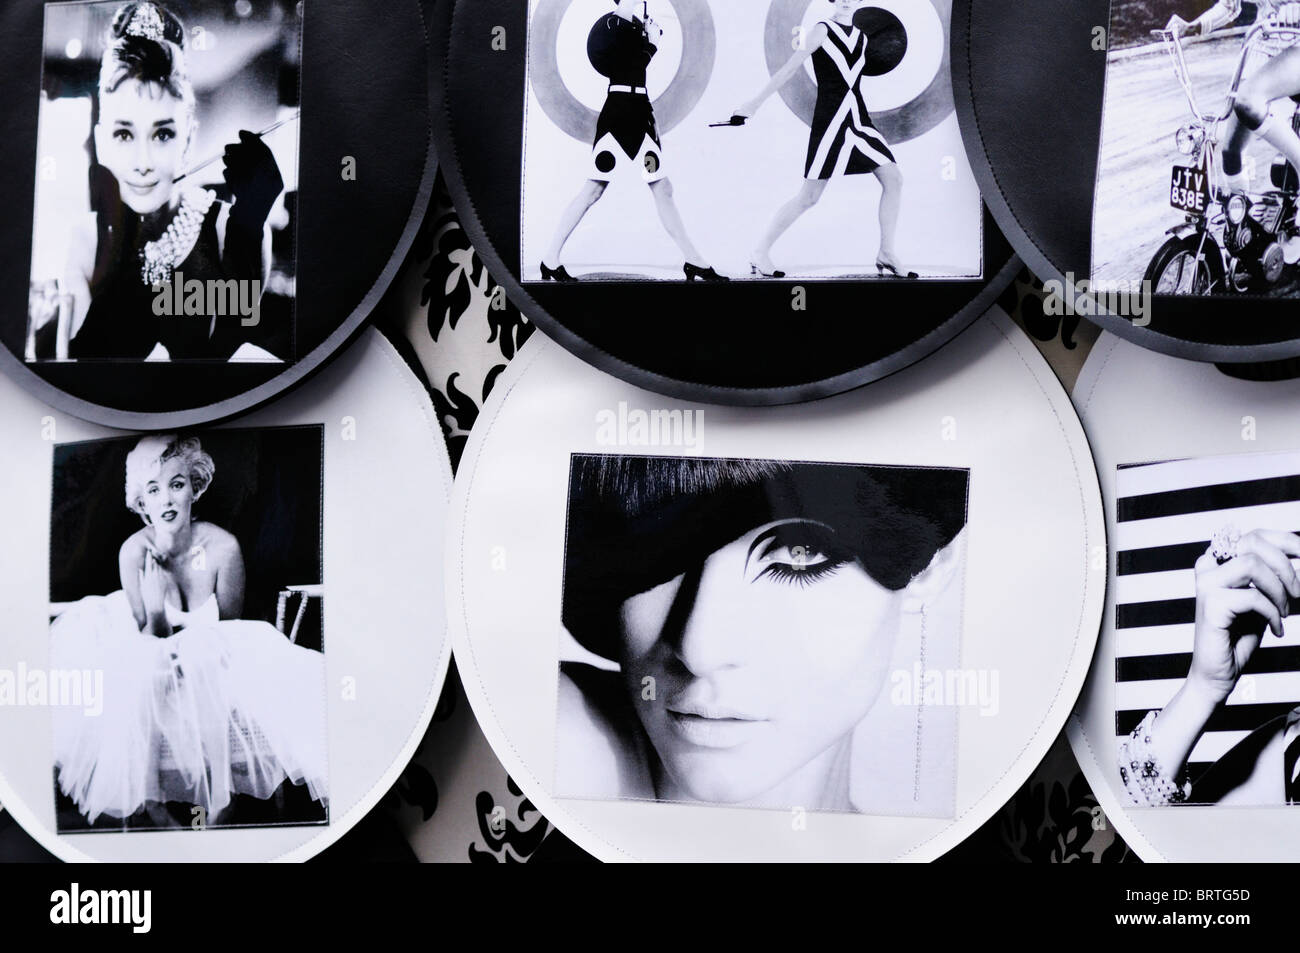 Graphic art on a stall on Portobello Market, Notting Hill, London, England, UK - Stock Image